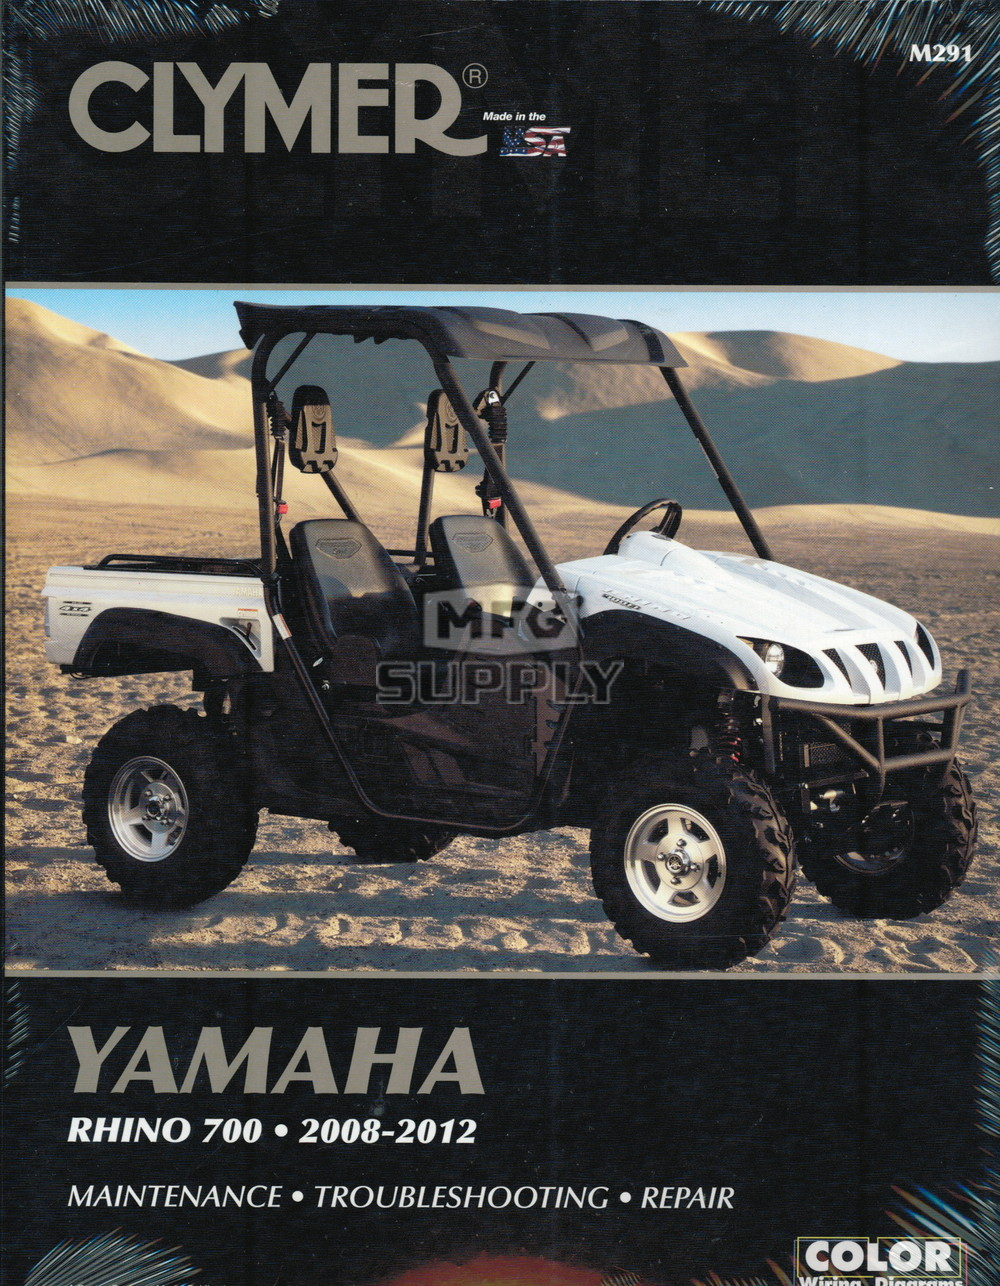 08-12 Yamaha Rhino 700 Repair & Maintenance manual